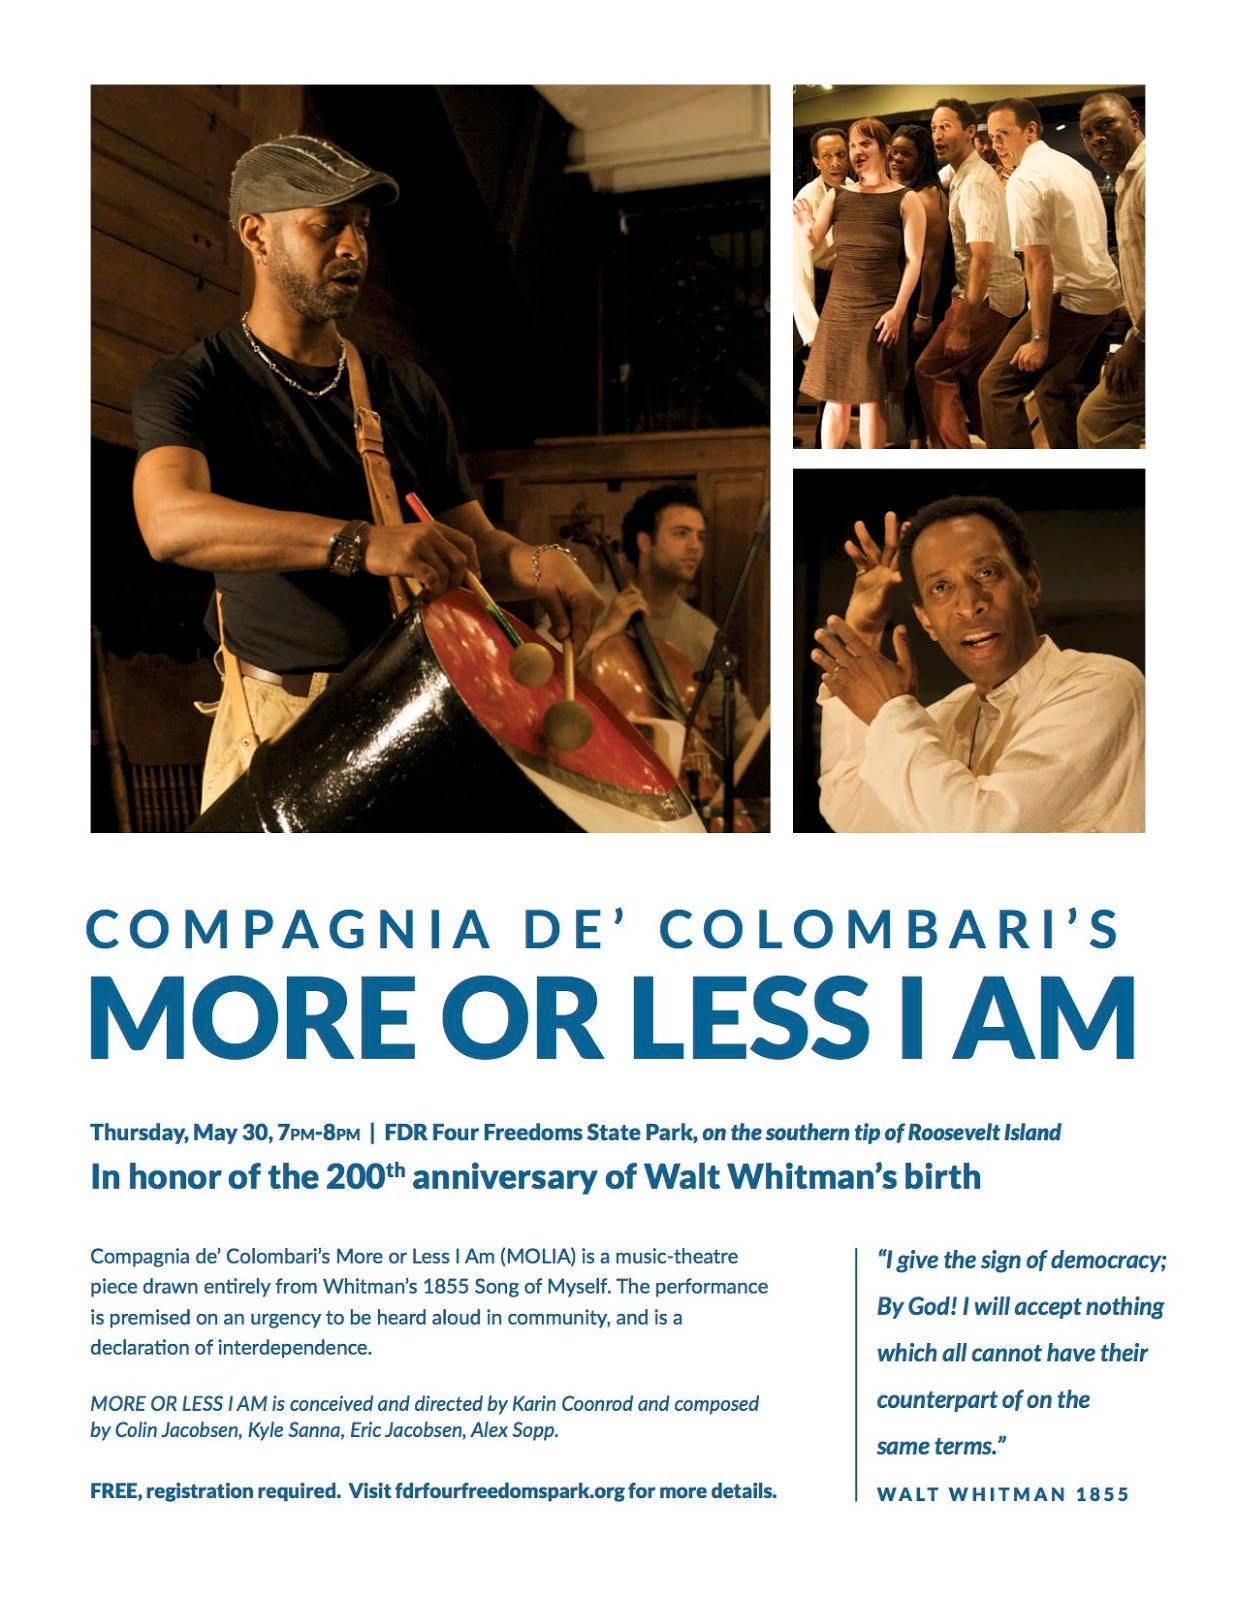 FDR 4 Freedoms Park Presents More Or Less I Am - 7 PM Thursday May 30